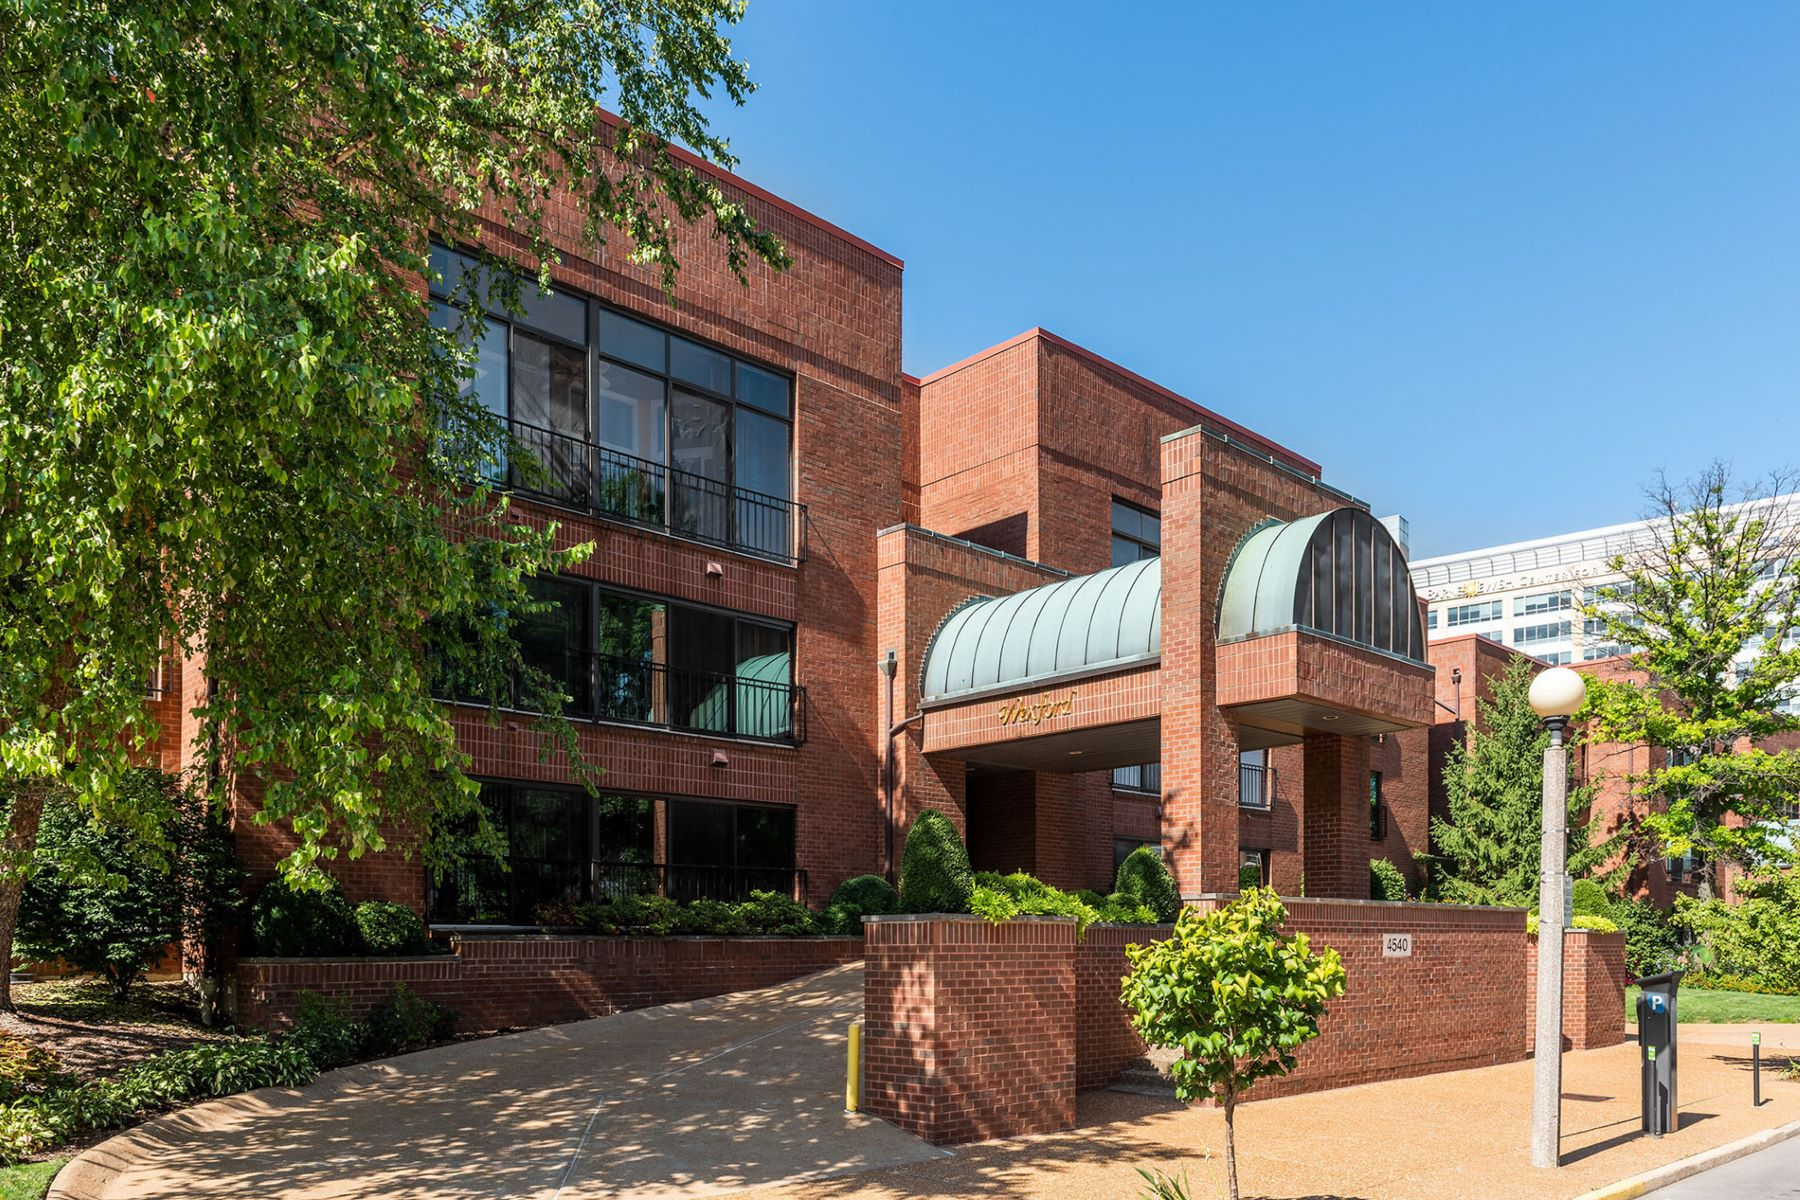 Property for Sale at Laclede Ave 4540 Laclede Ave # 107 St. Louis, Missouri 63108 United States